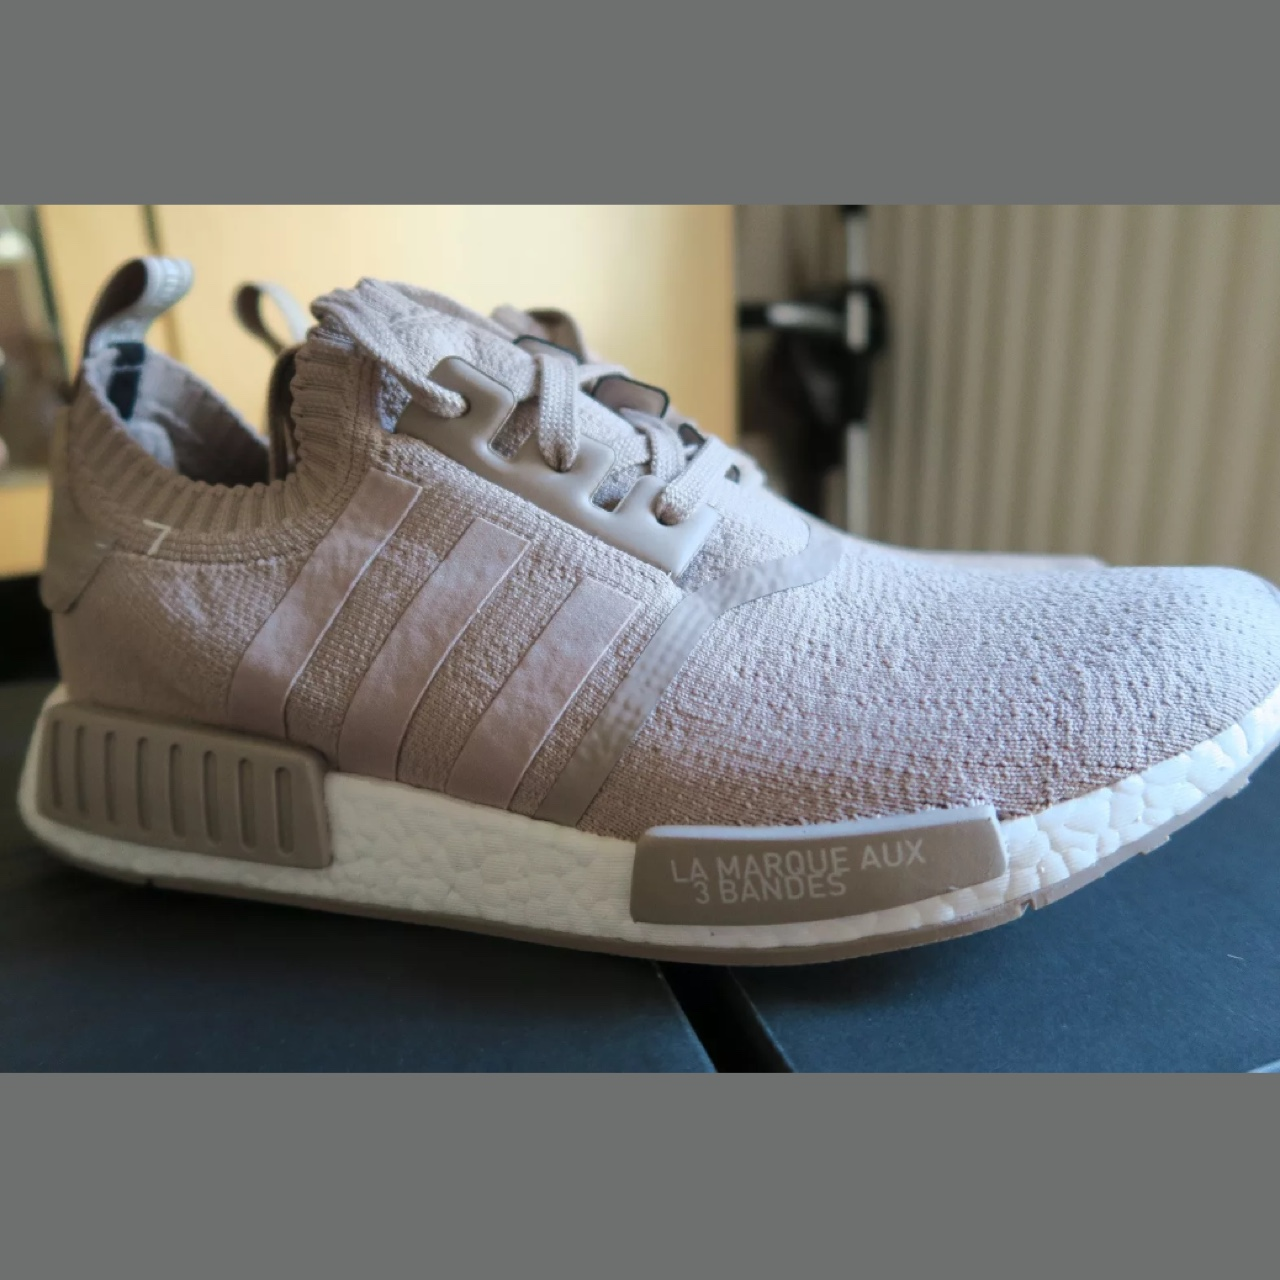 Adidas NMD R1 Primeknit Vapour Grey French Beige